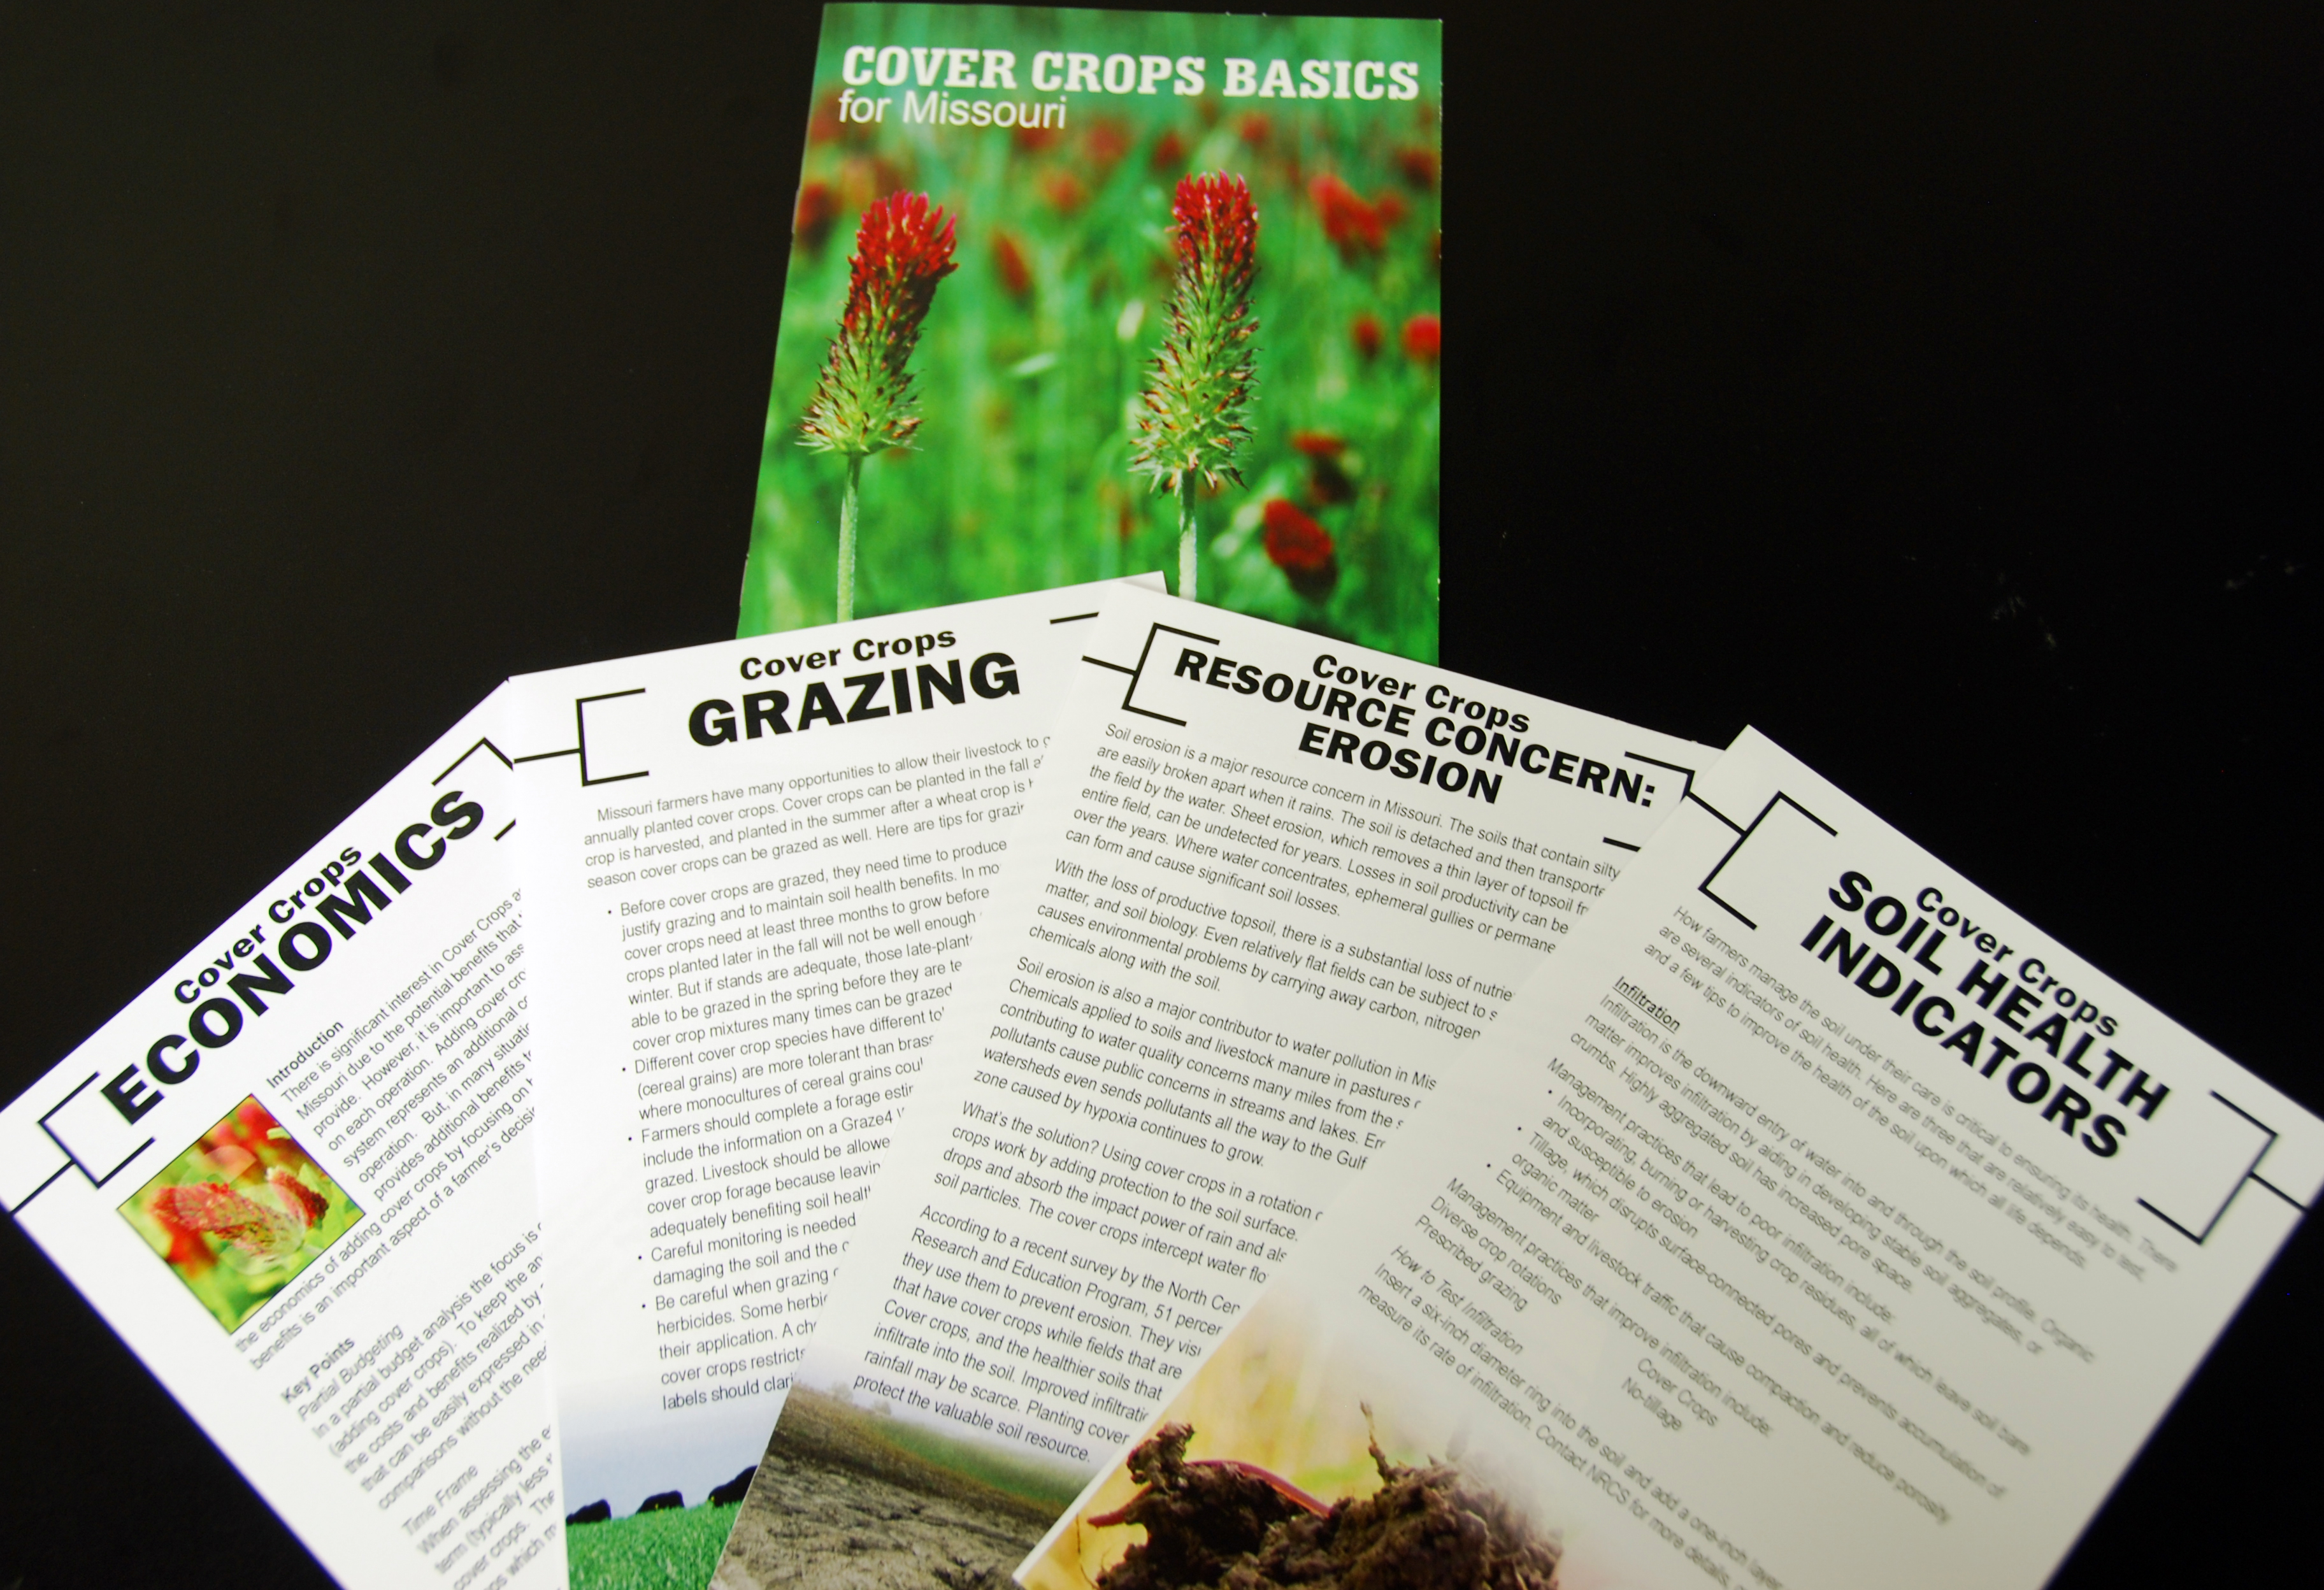 Missouri Cover Crop folder with inserts.